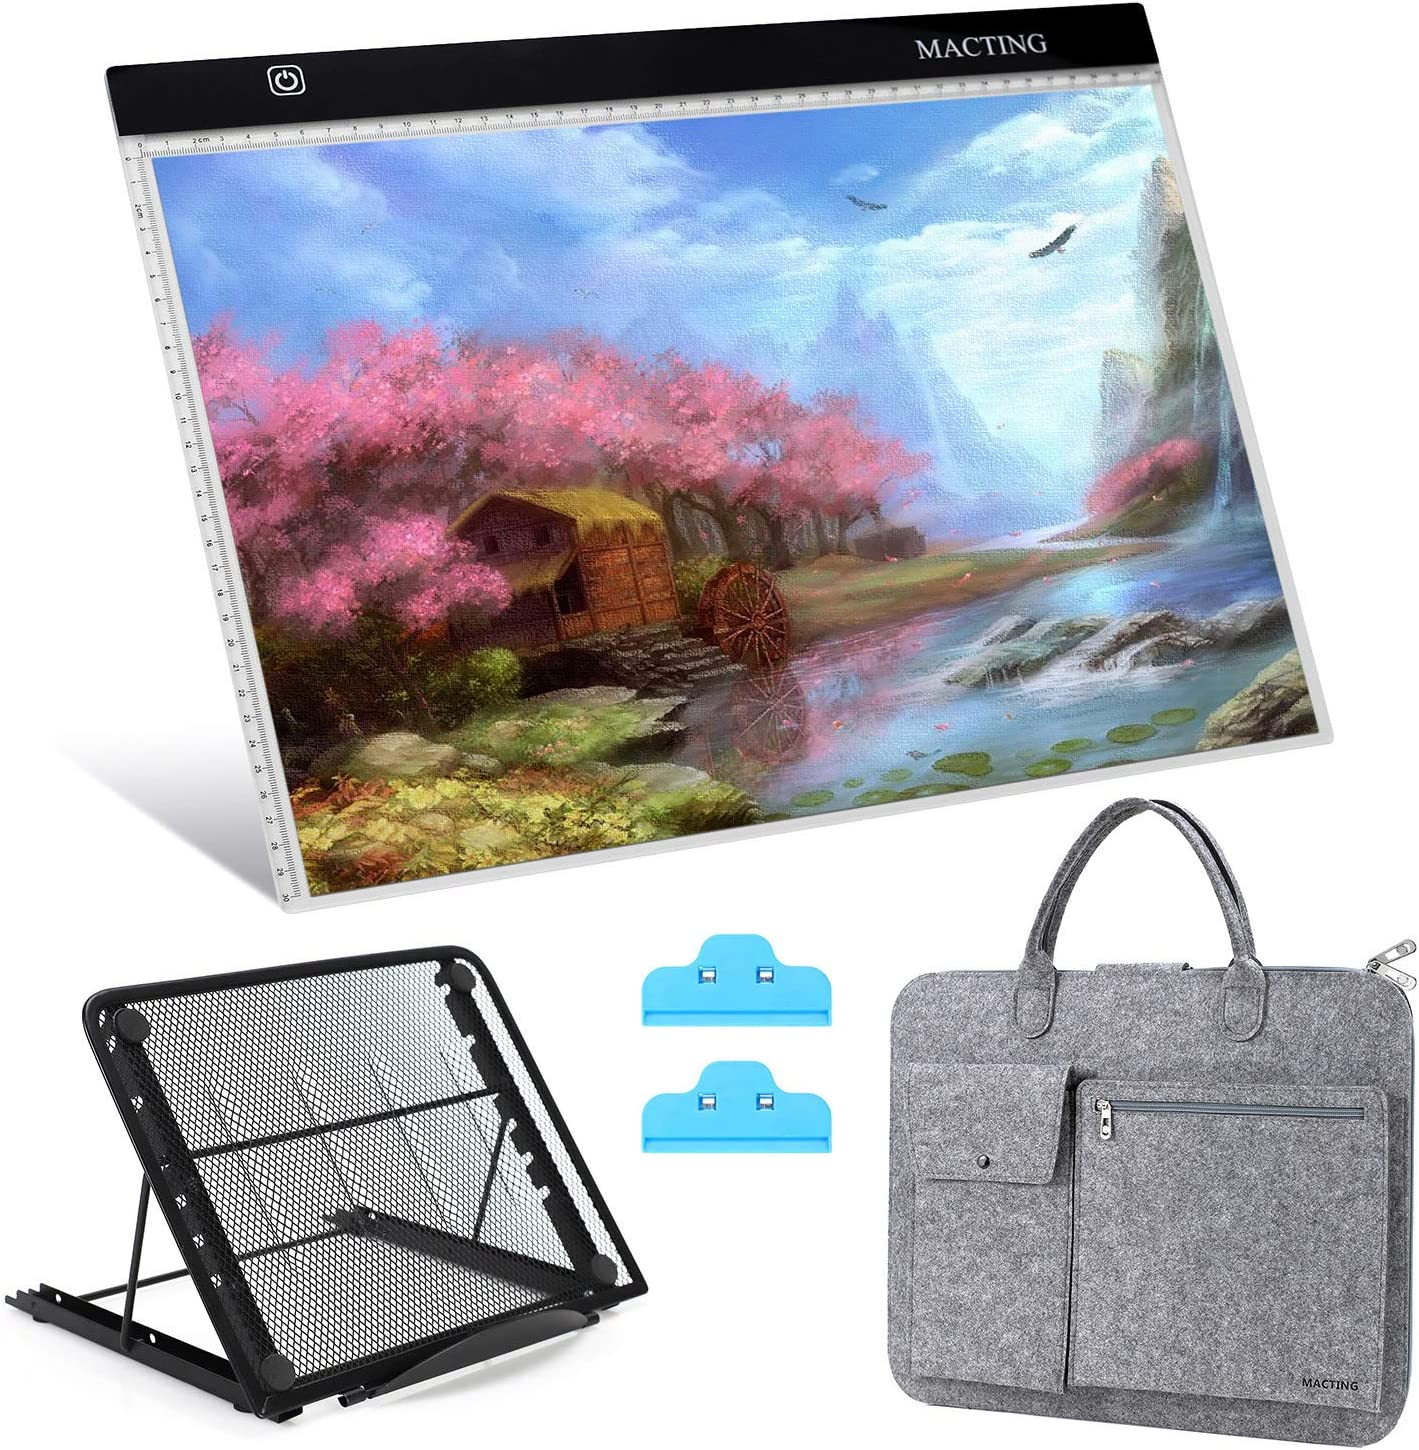 A5 Set with Bag Painting Pen Cross Stitch Tool Kit for Artists Drawing Sketching Animation Stenciling and X-Ray Viewing DIY Art Craft A5 LED Light Tablet Board Pad with Carry Bag